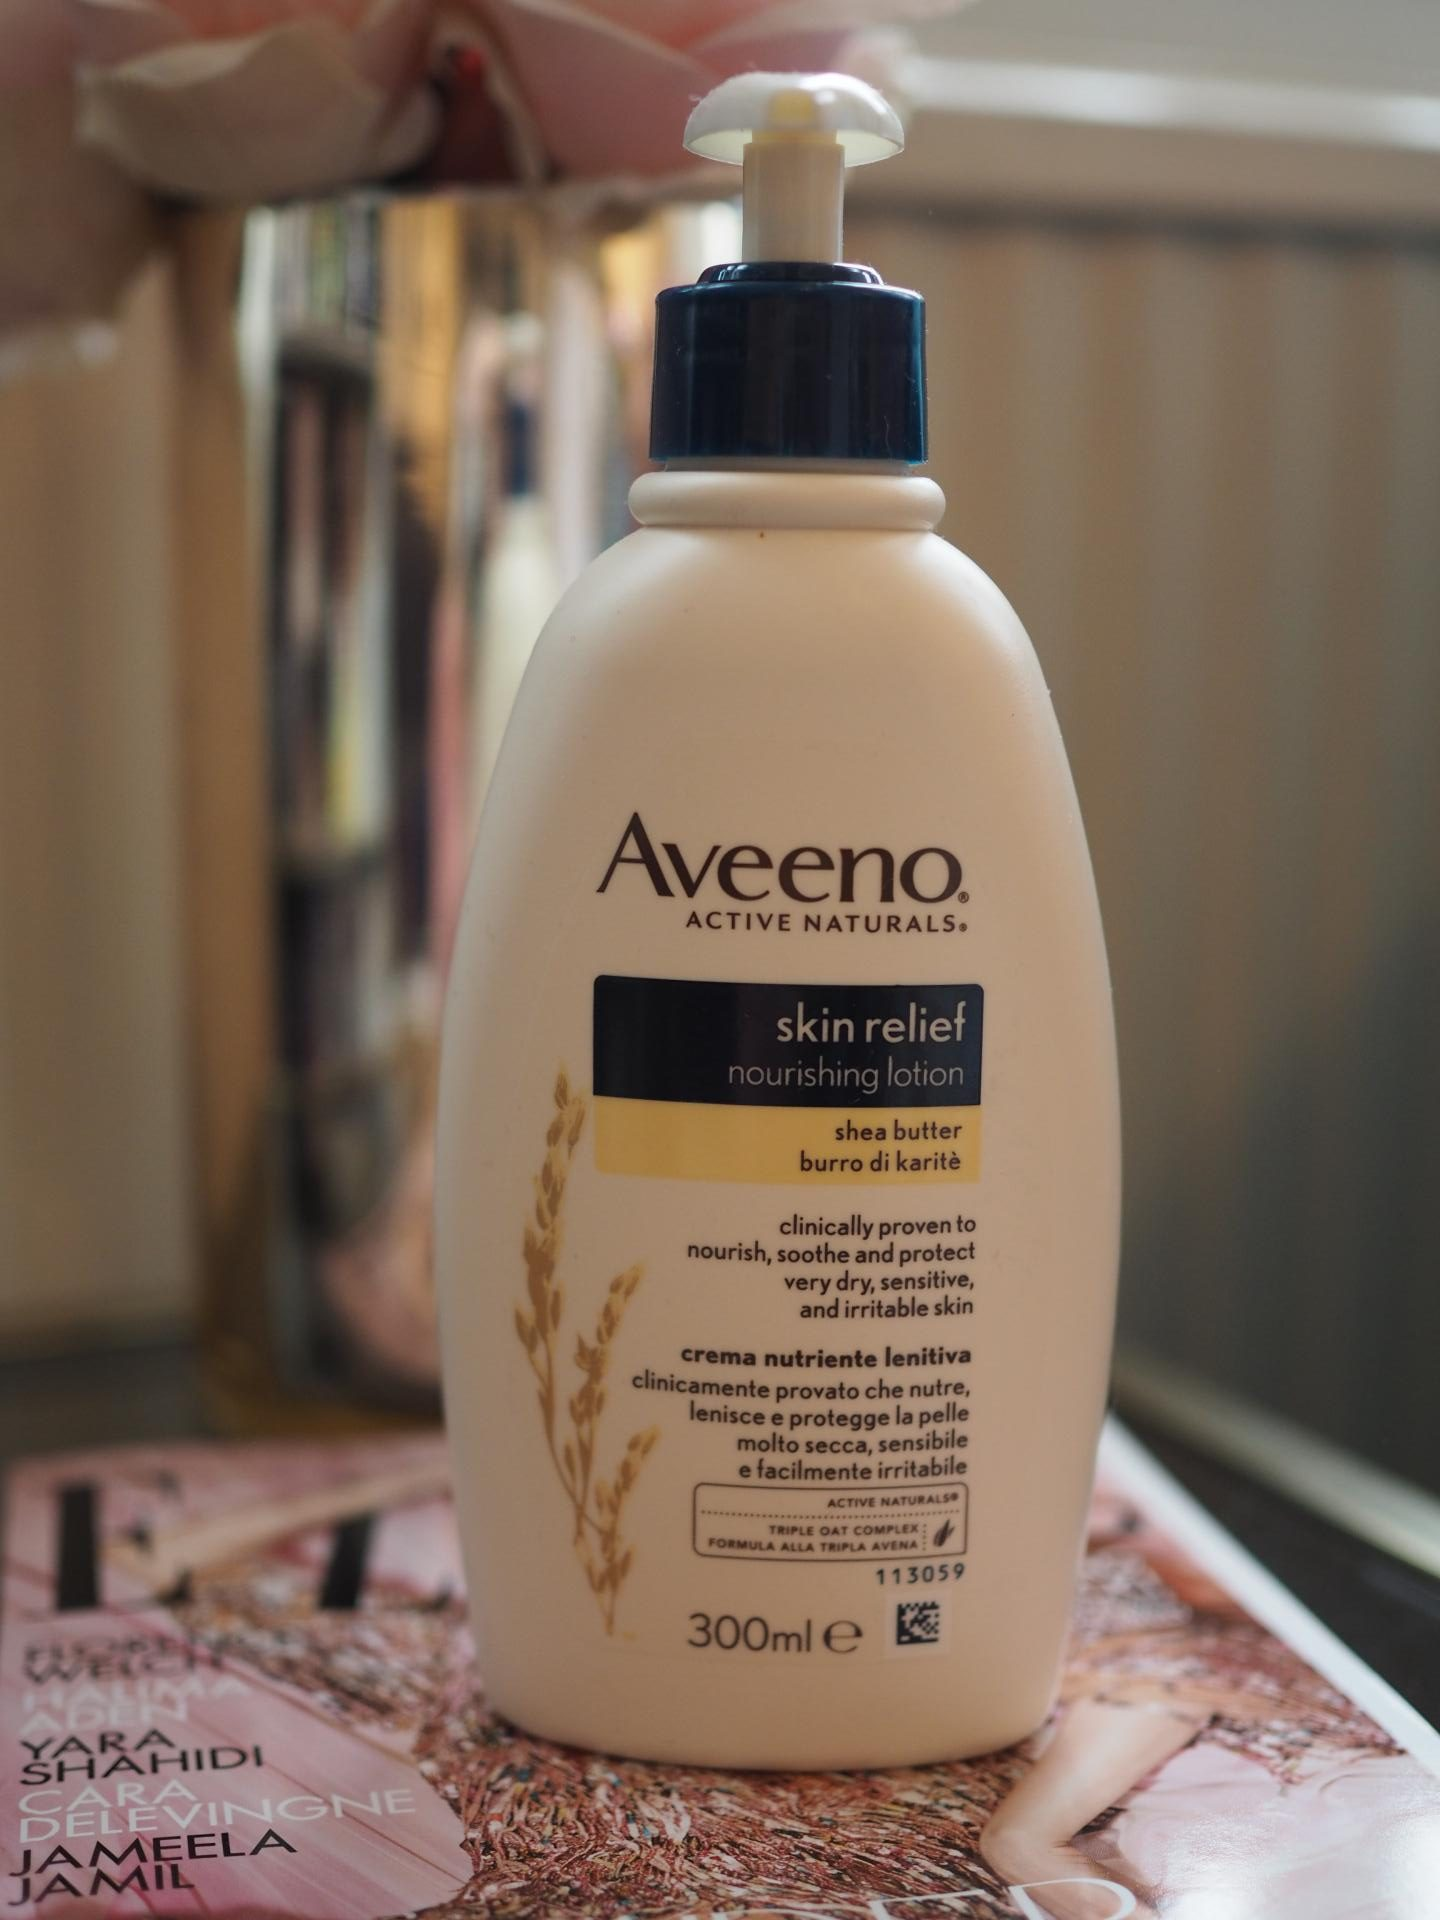 Aveeno Skin Relief Nourishing Lotion